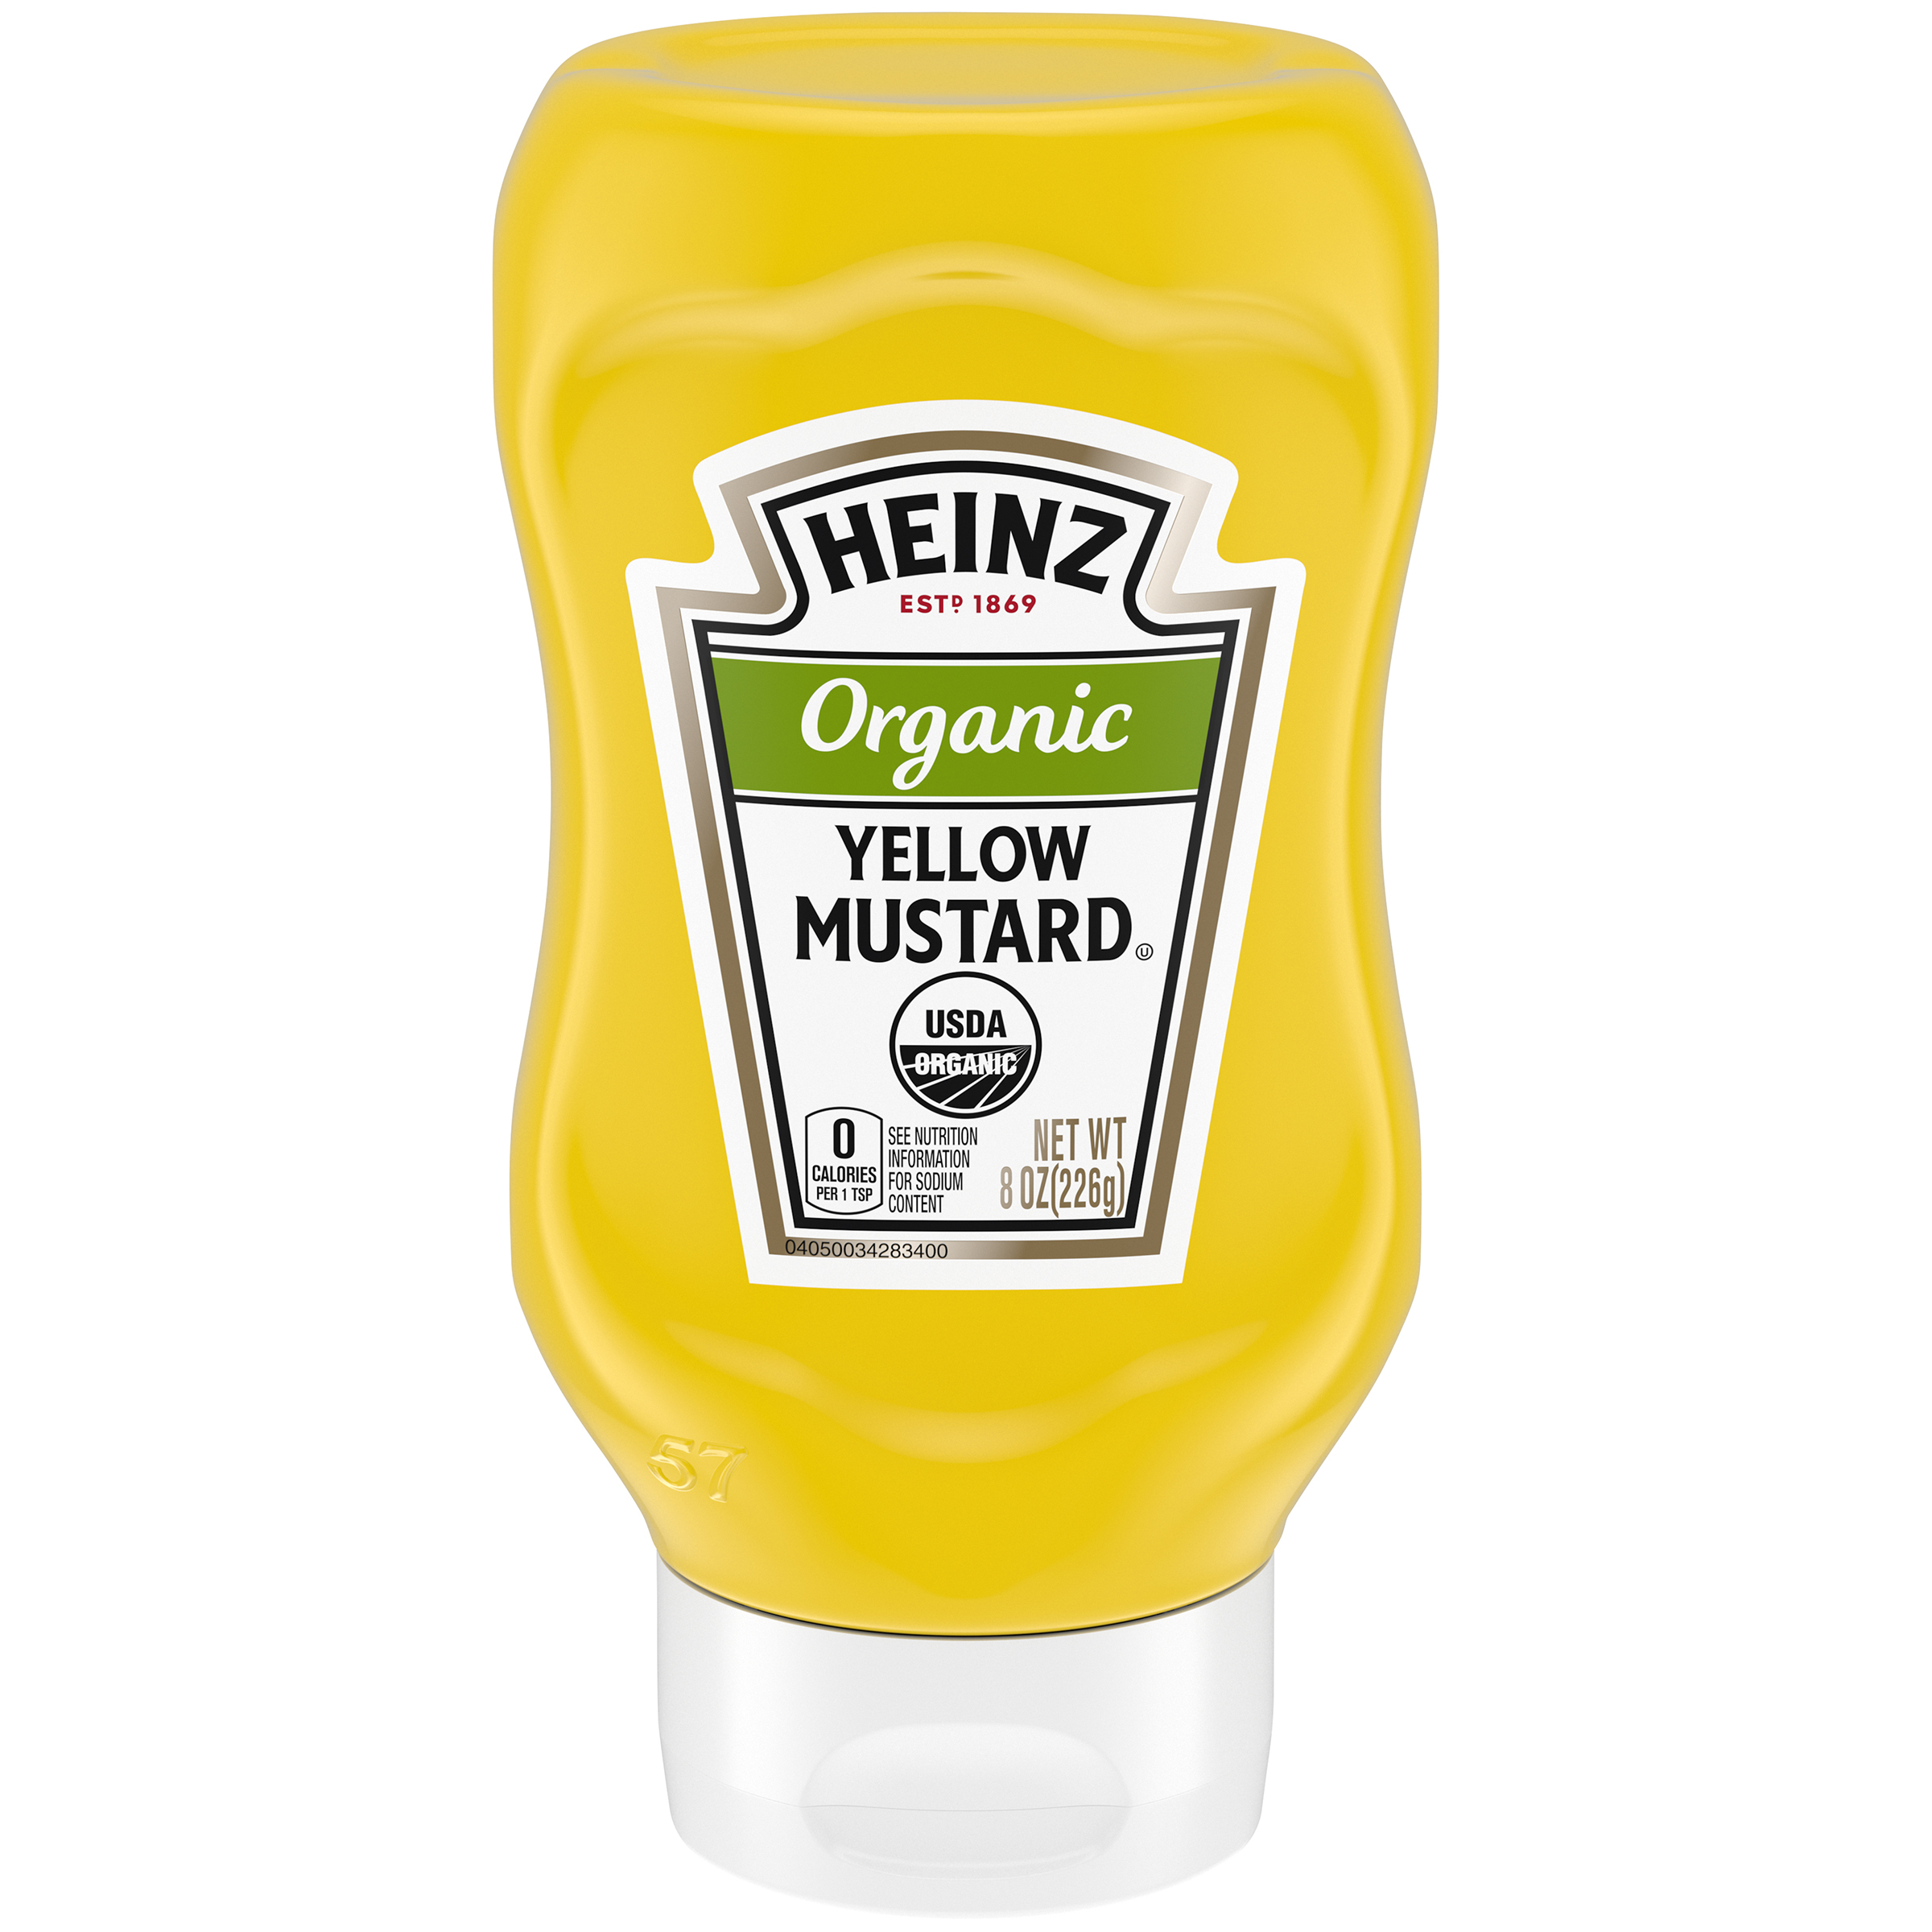 Heinz Organic Yellow Mustard 8 oz Bottle image